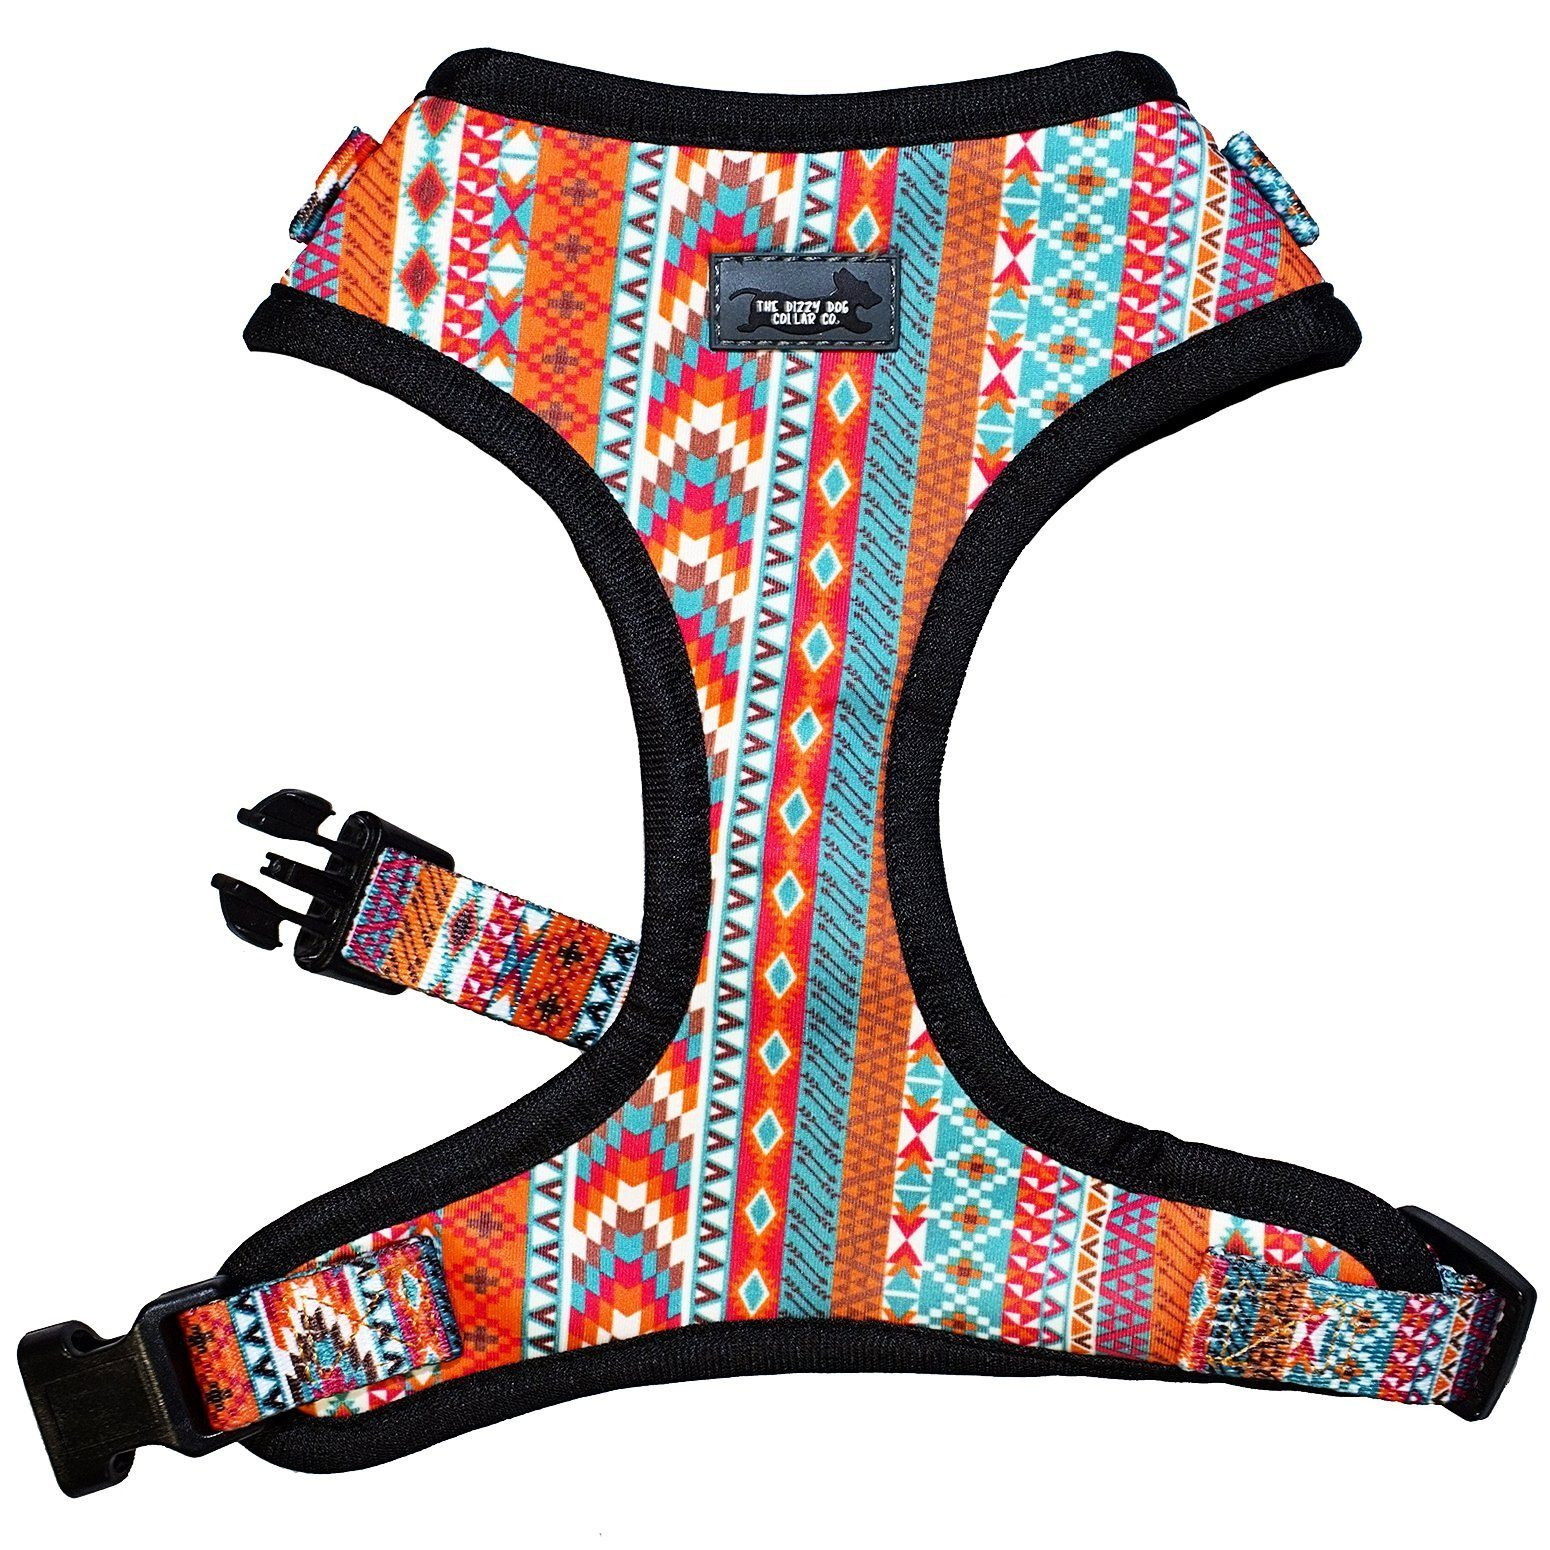 aztec dog collar, aztec dog harness, adjustable dog harness, best dog harness for small dogs